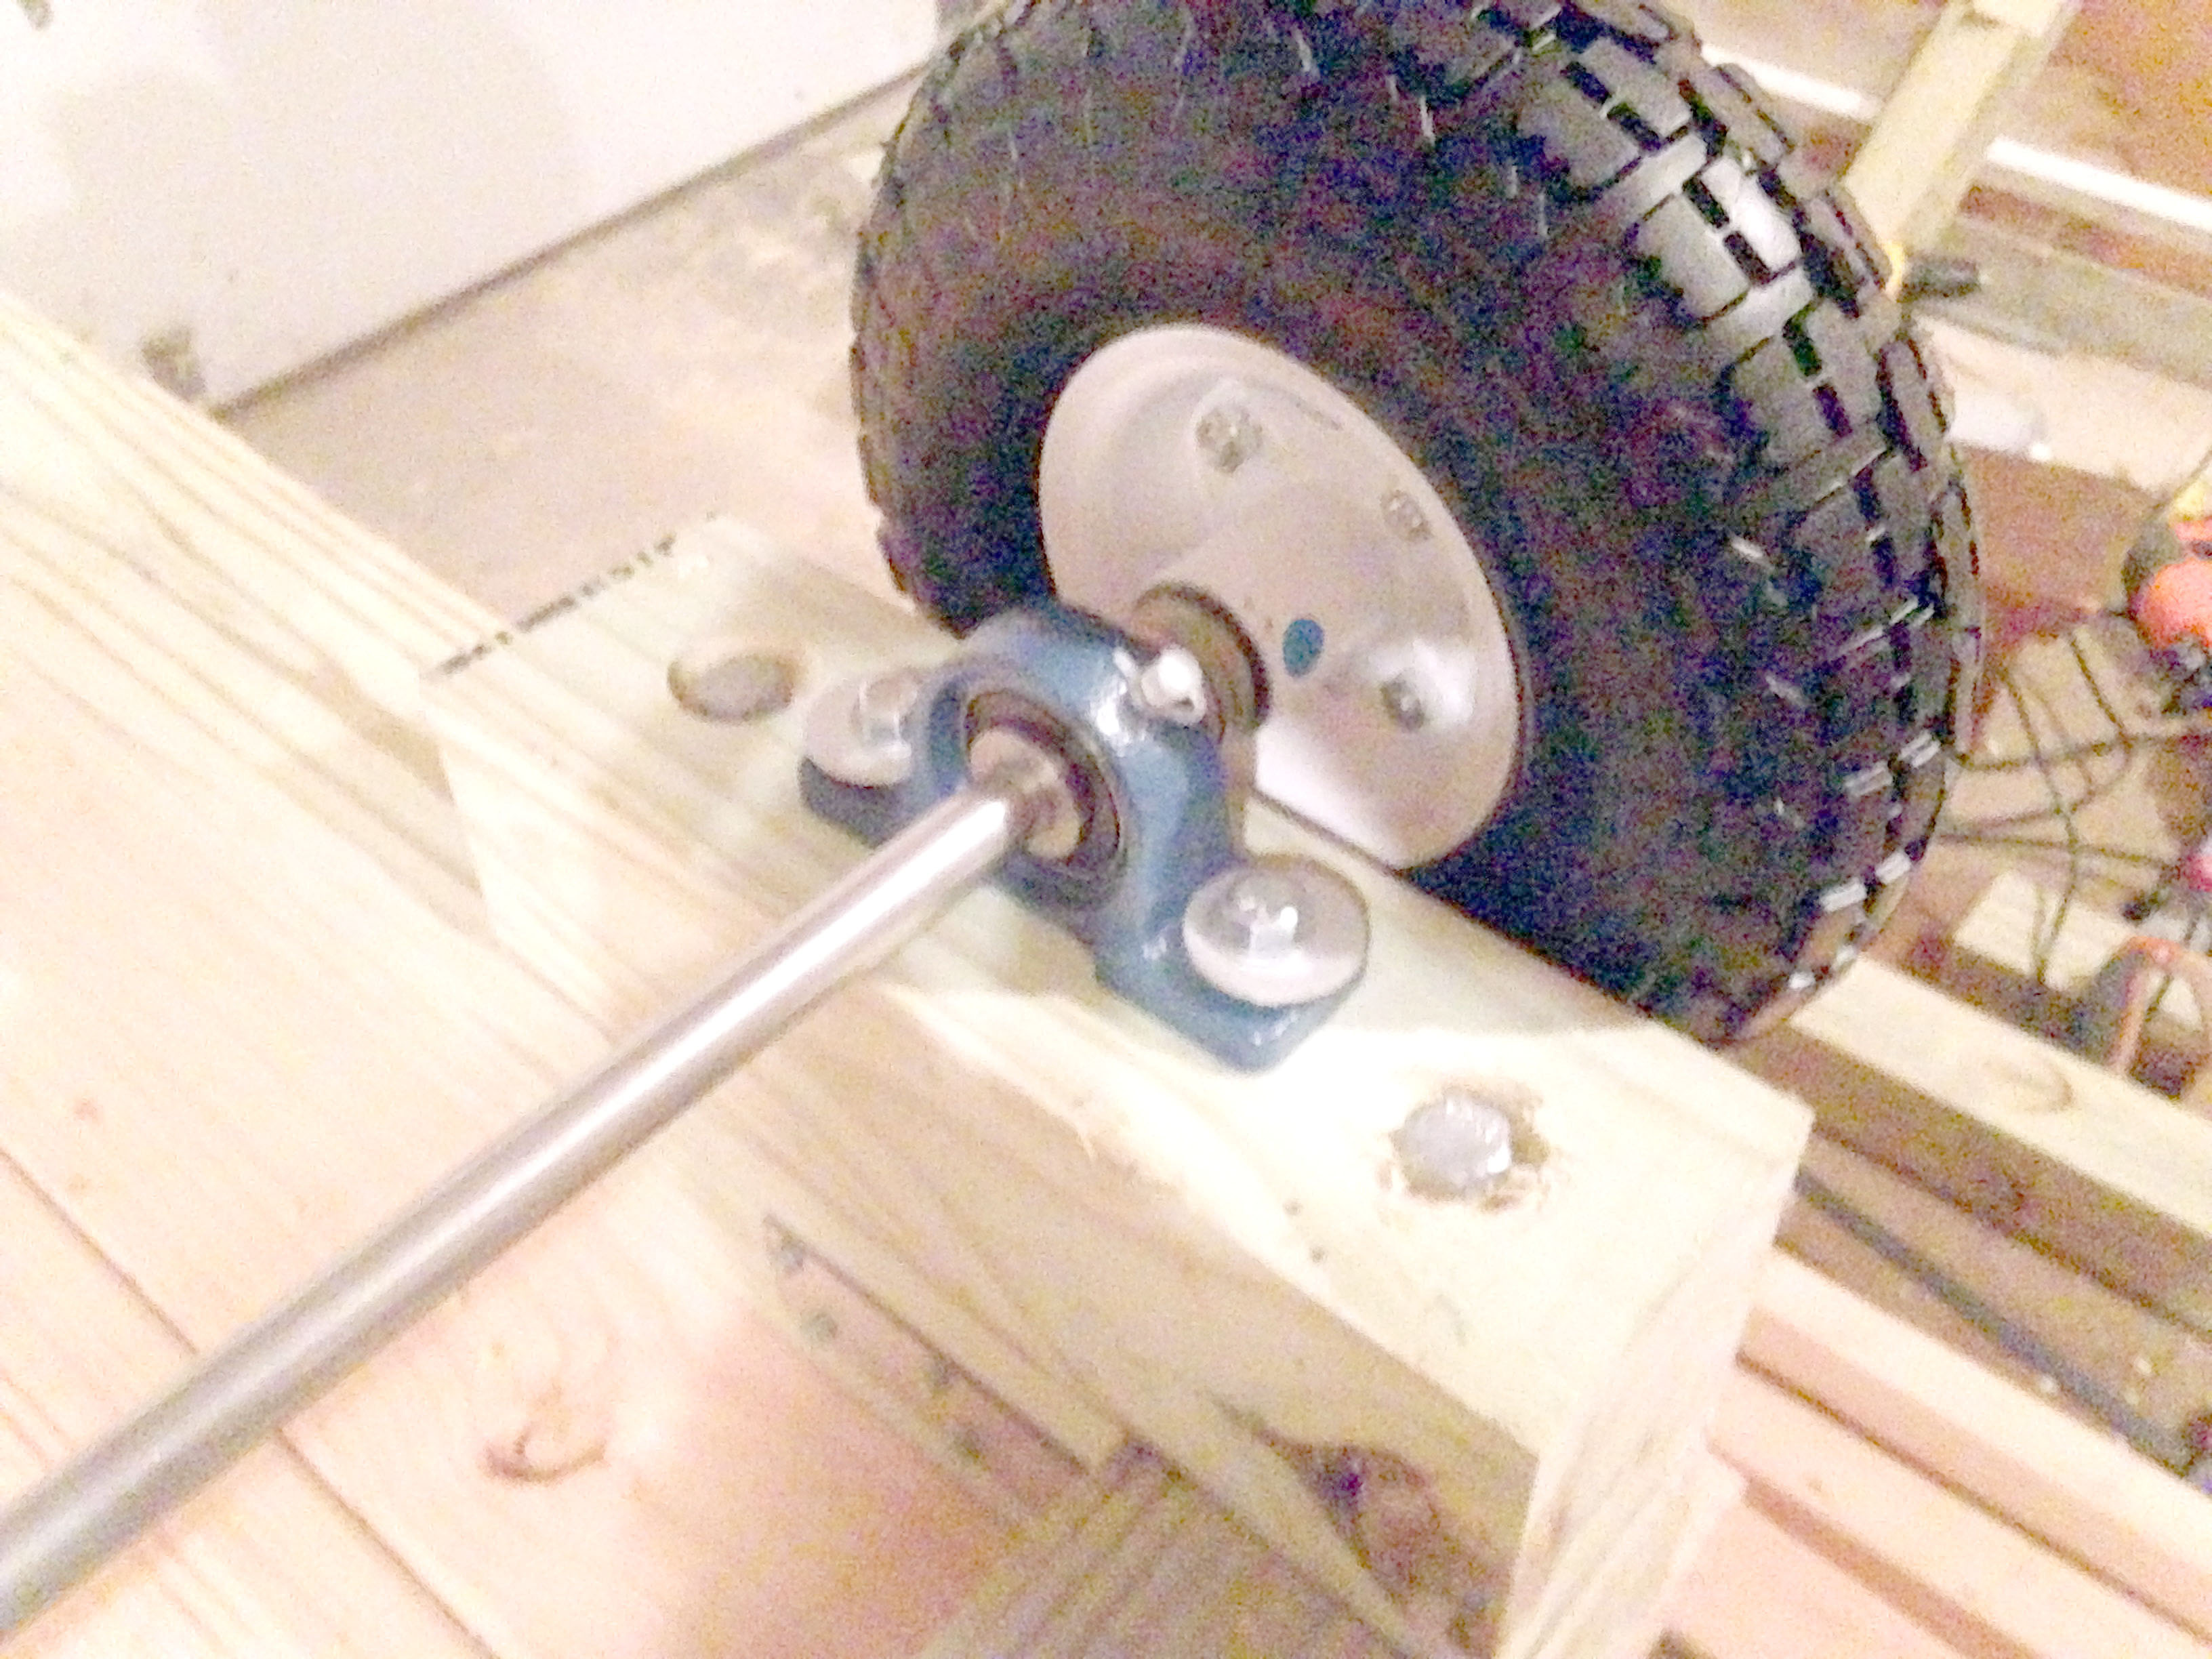 Close-Up of the Wheel Structure on DIY Utility Cart